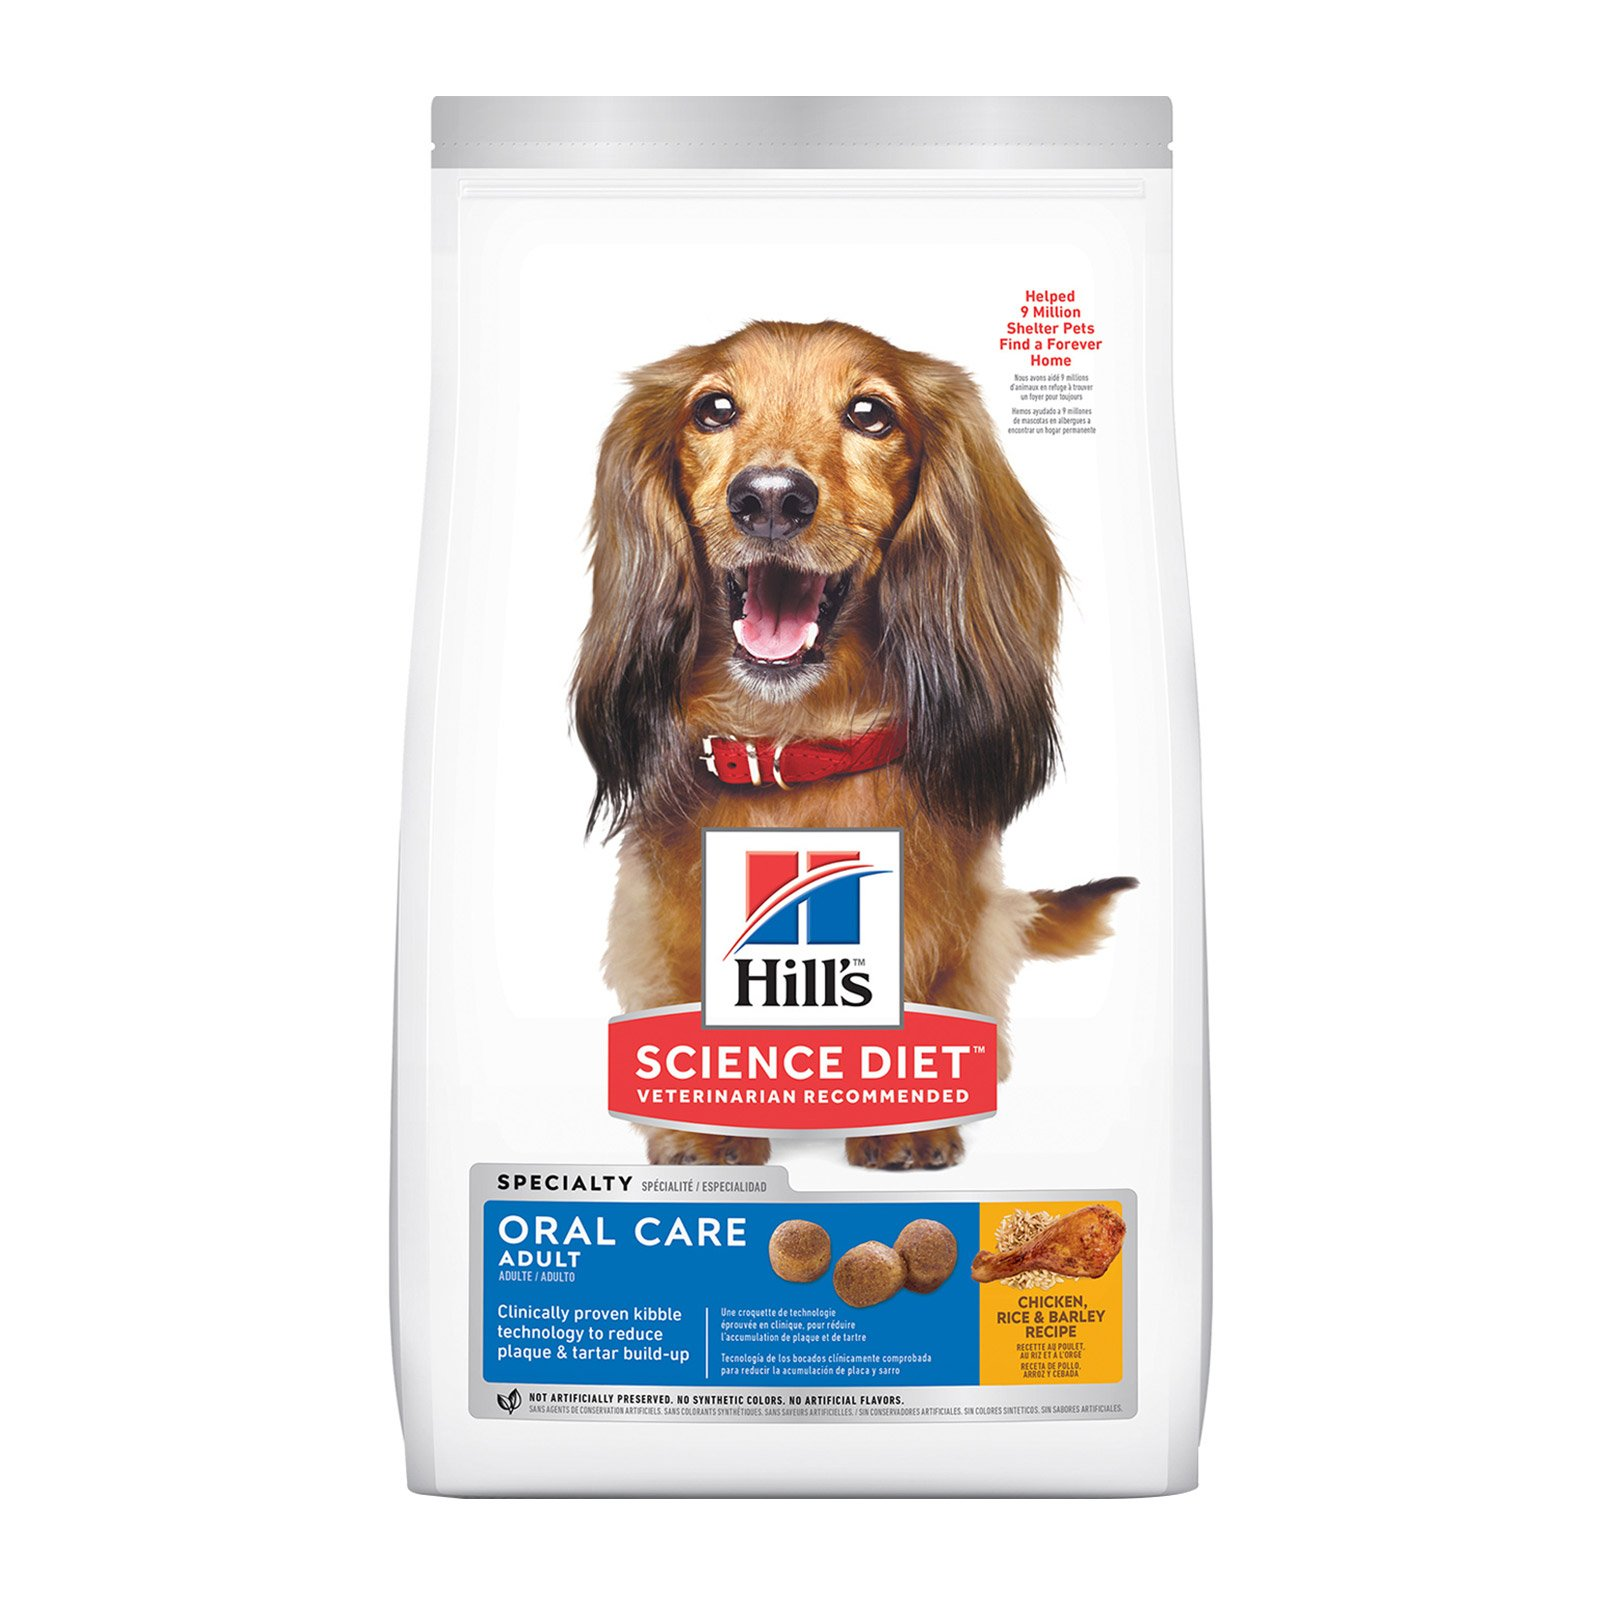 Hill's Science Diet Adult Oral Care Chicken, Rice & Barley Dry Dog Food